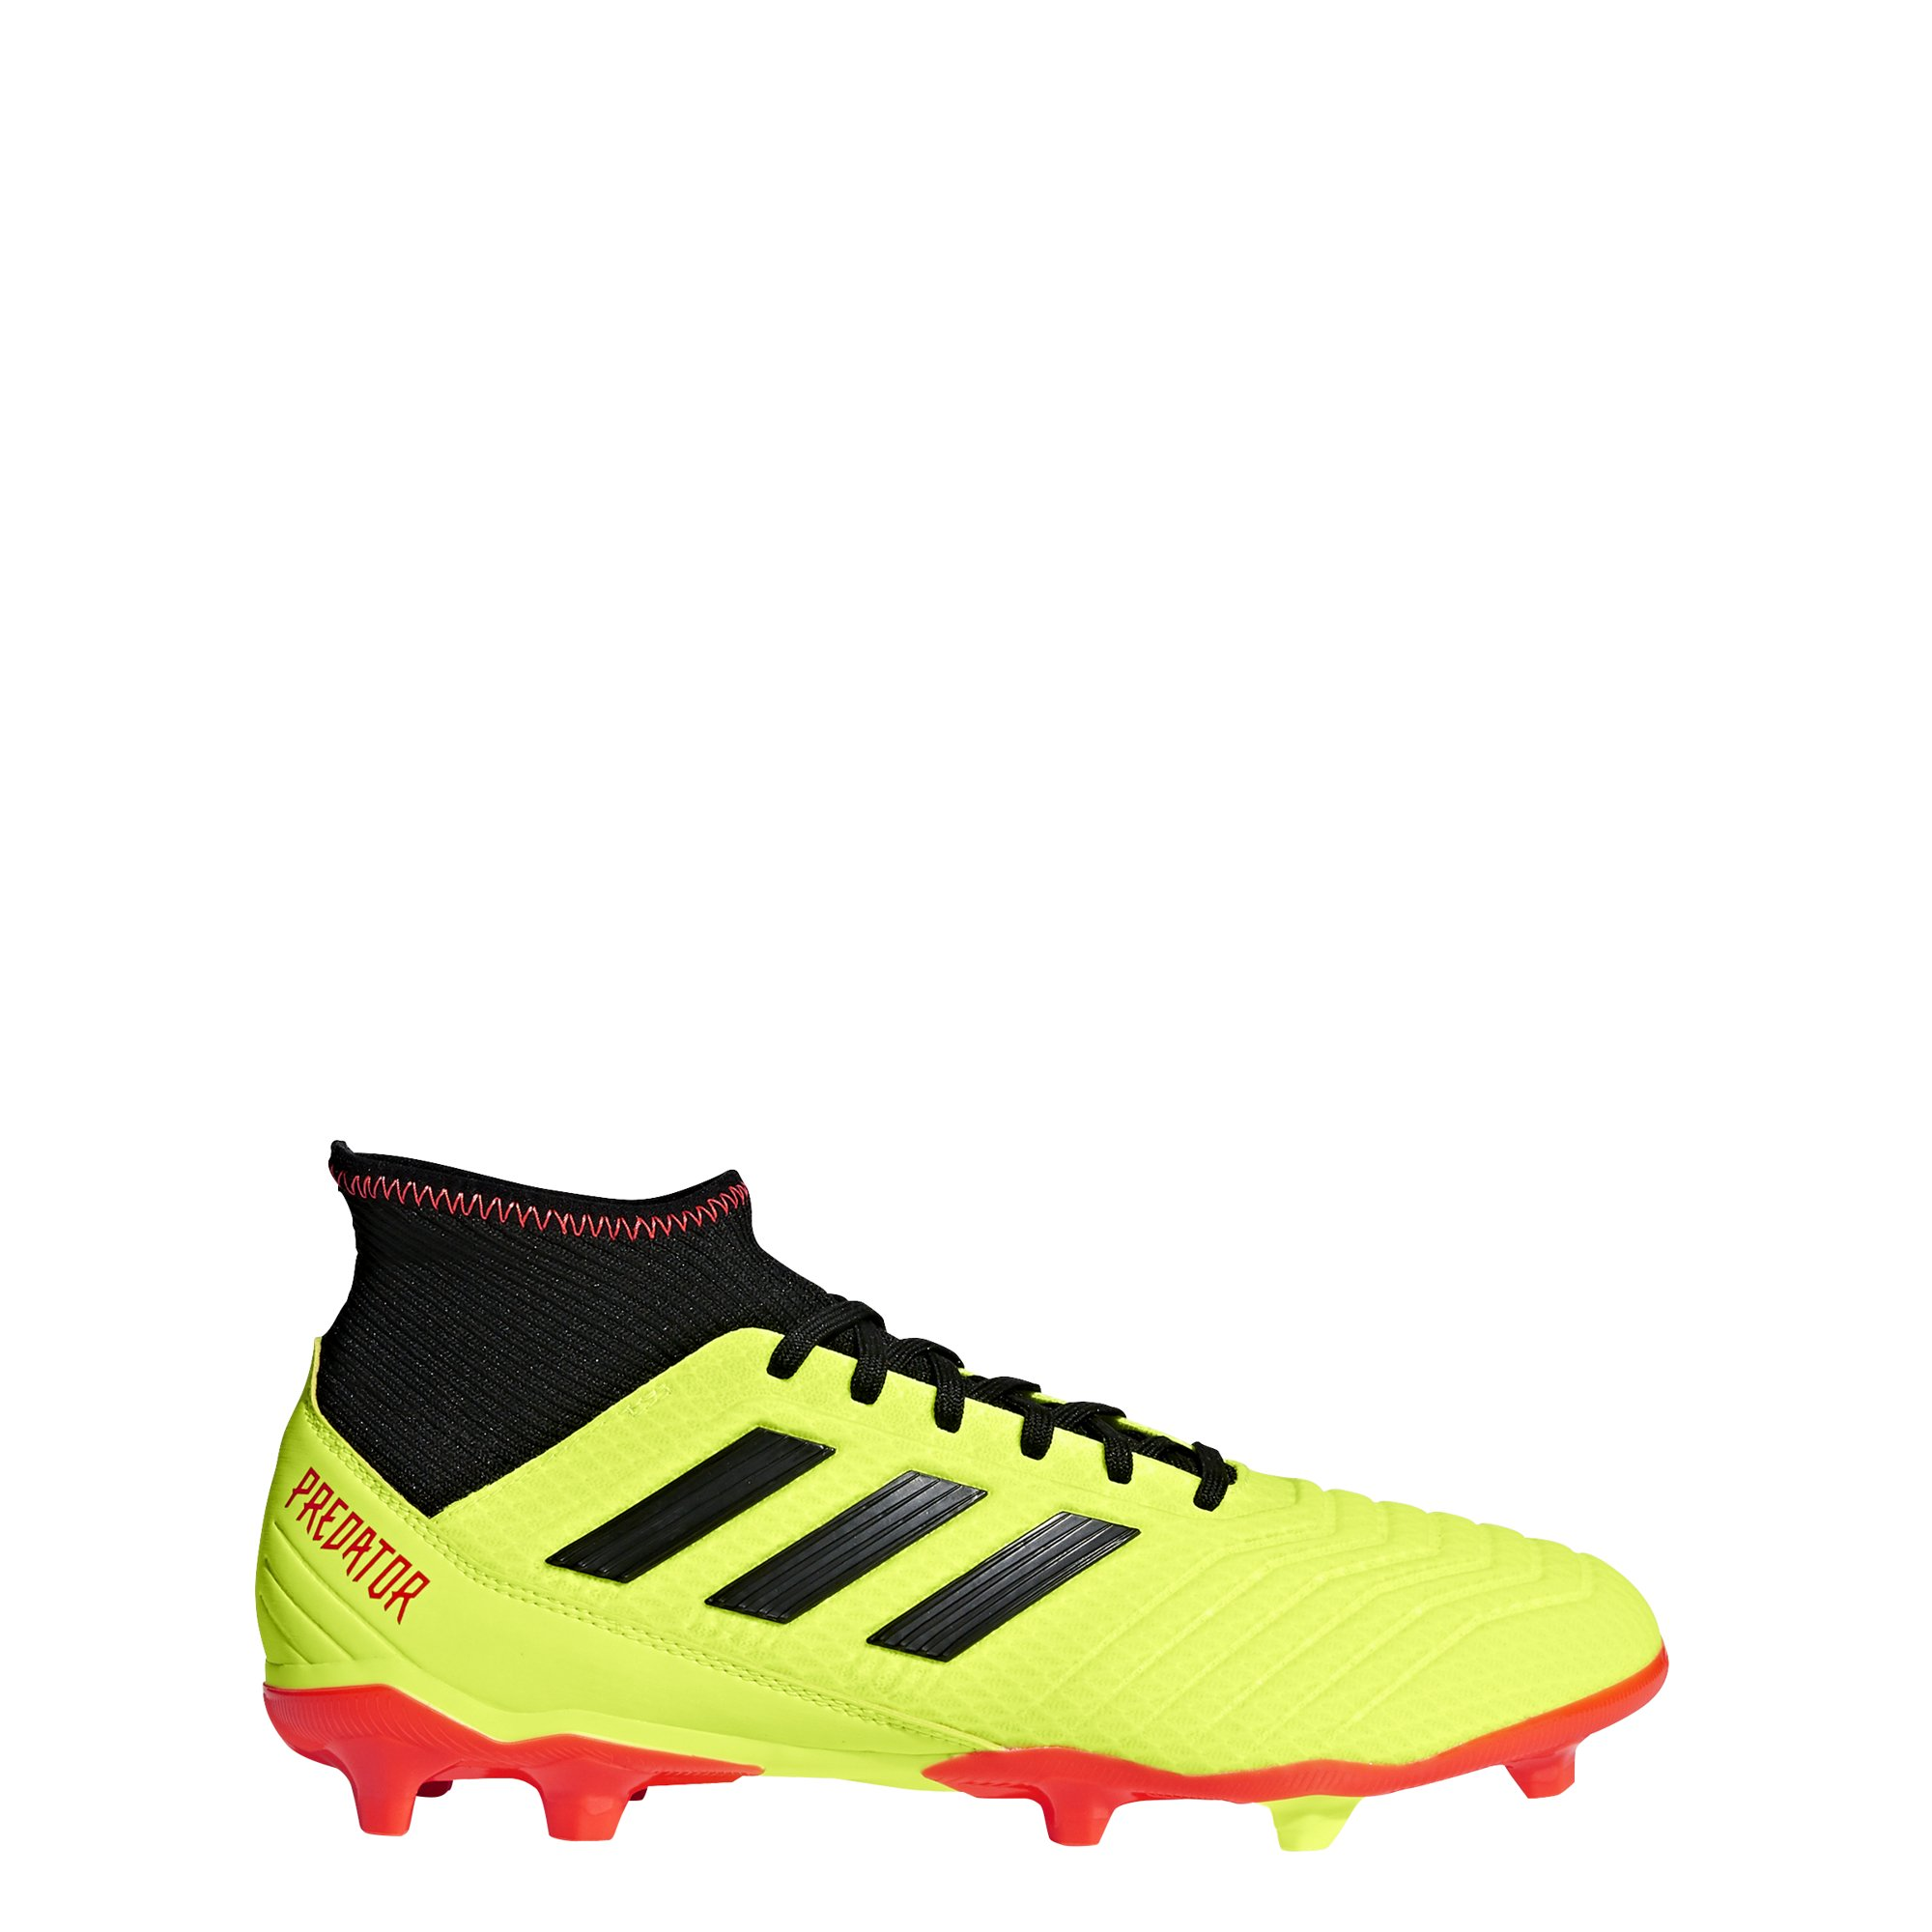 adidas Men's Predator 18.3 Firm Ground Soccer Shoe, Solar Yellow/Black/Solar Red, 6.5 M US